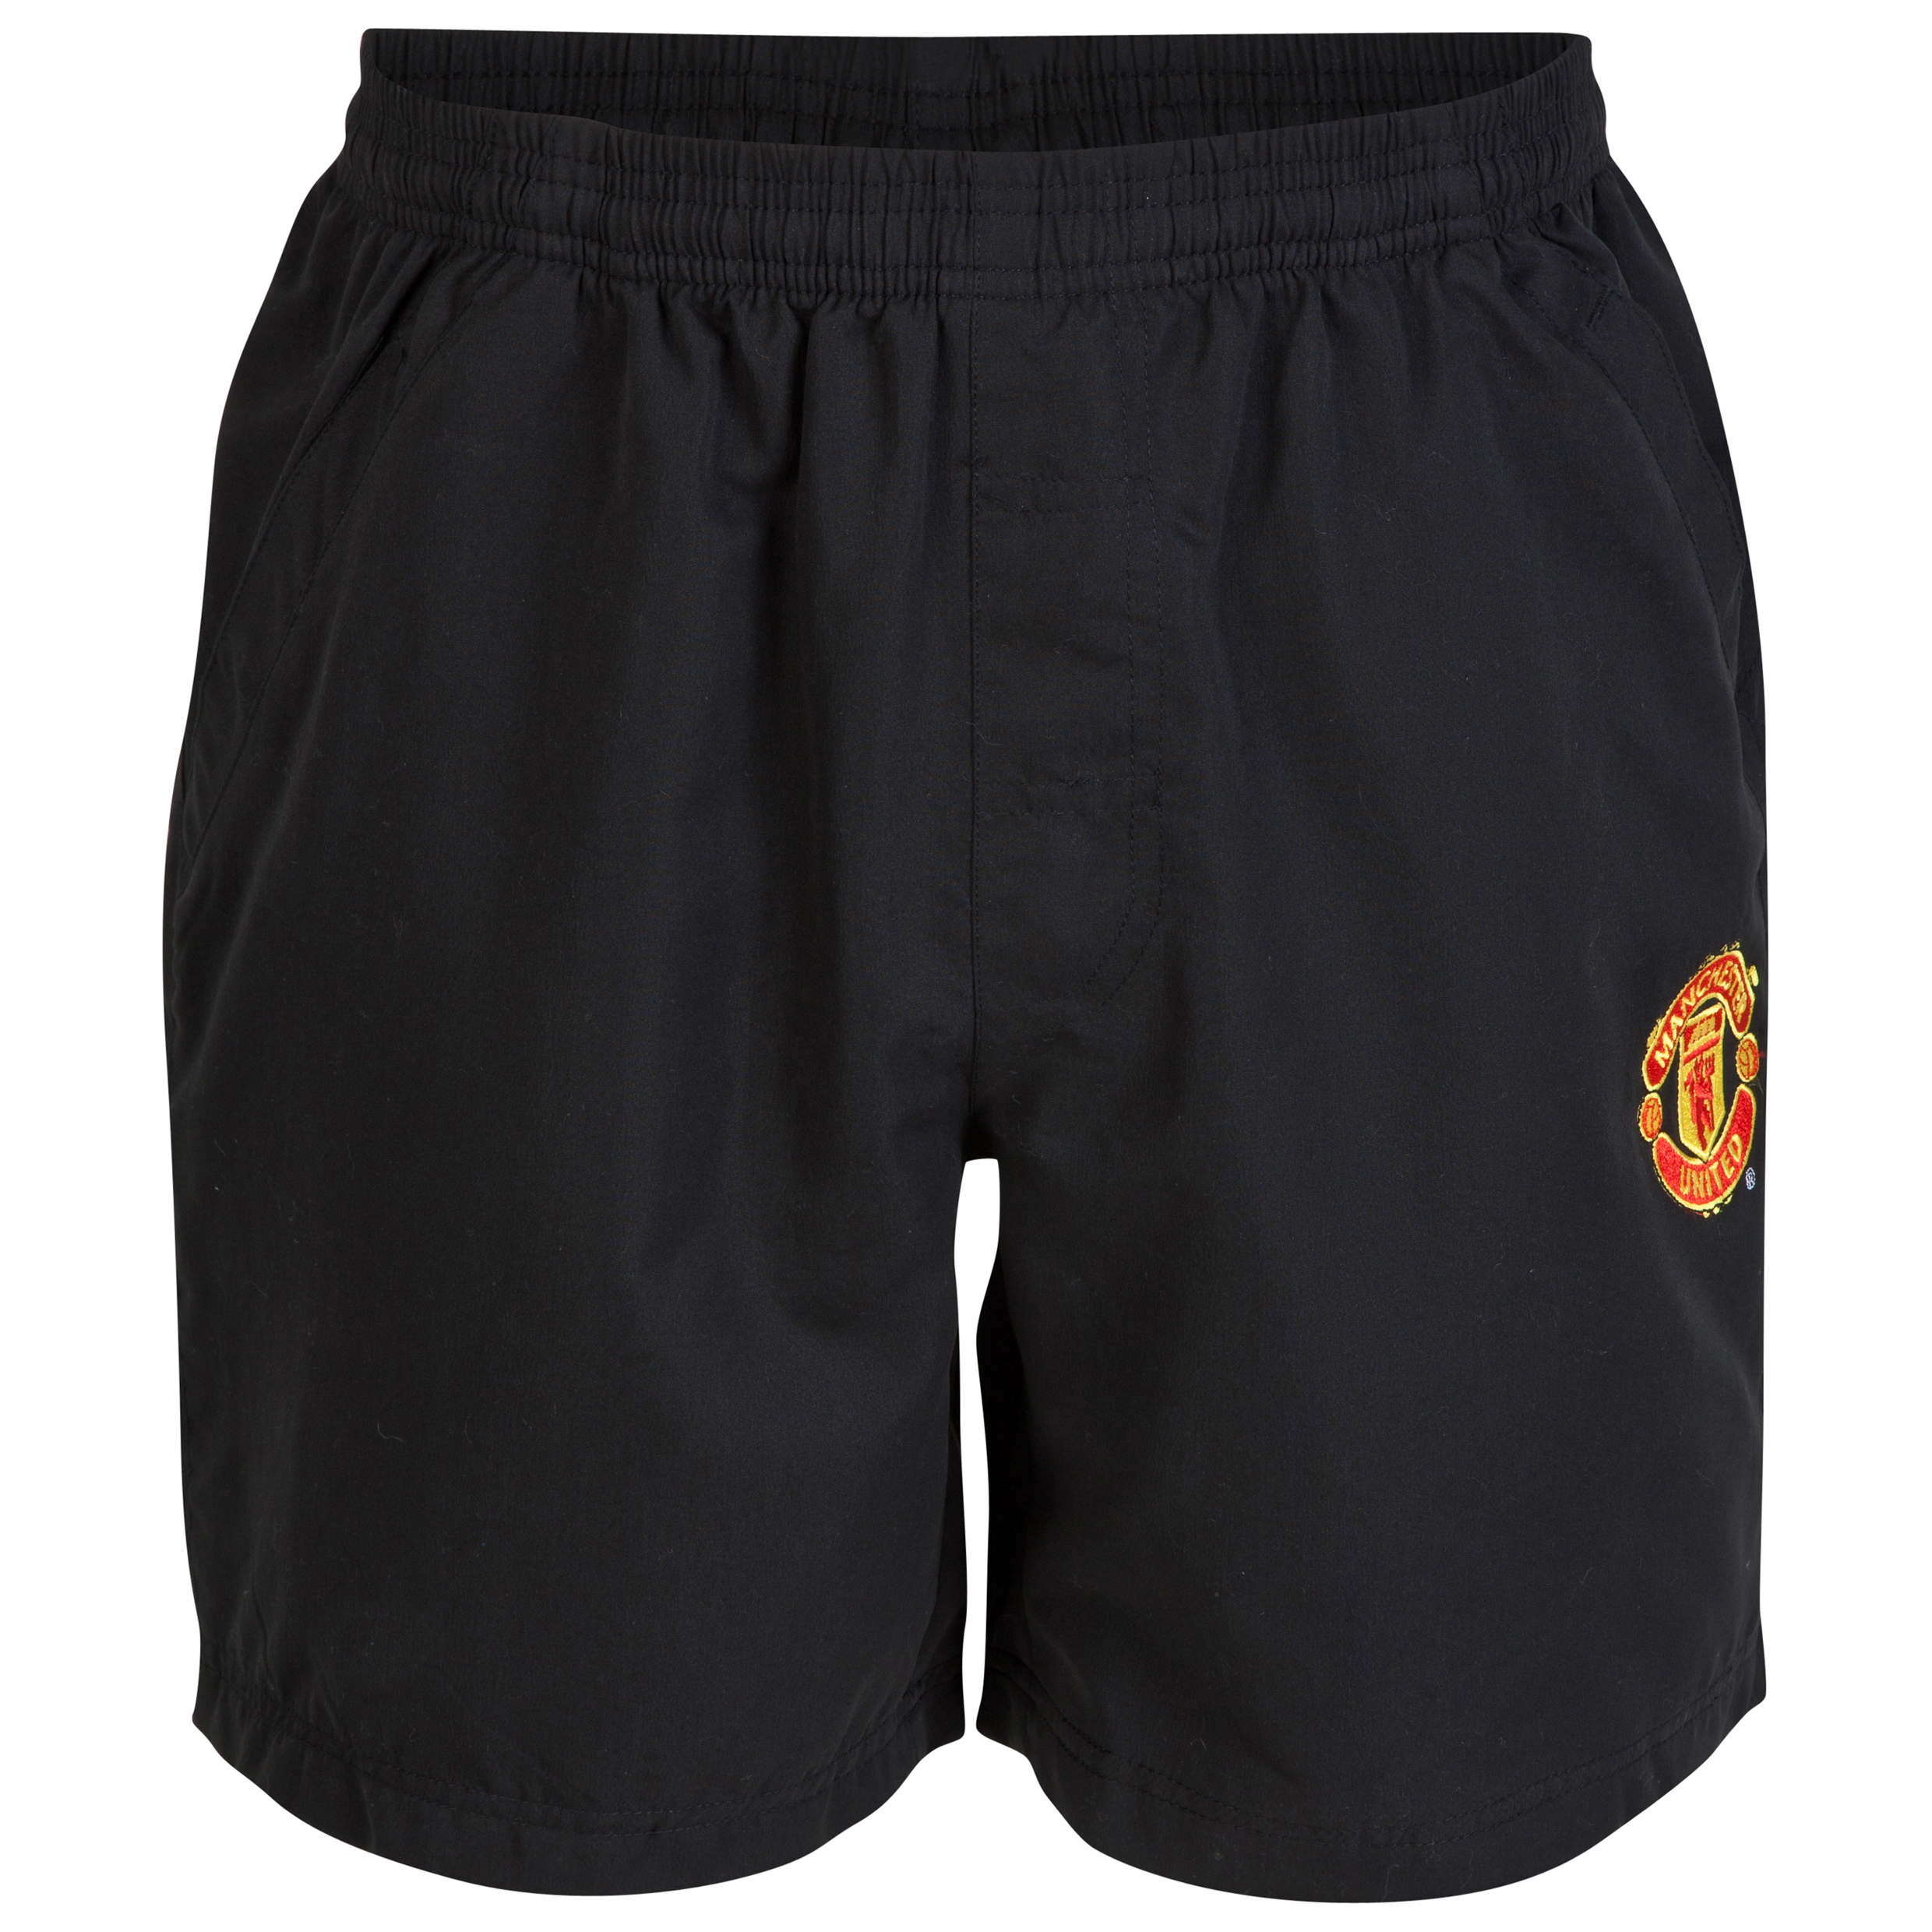 Manchester United Classic Woven Shorts - Older Boys Black